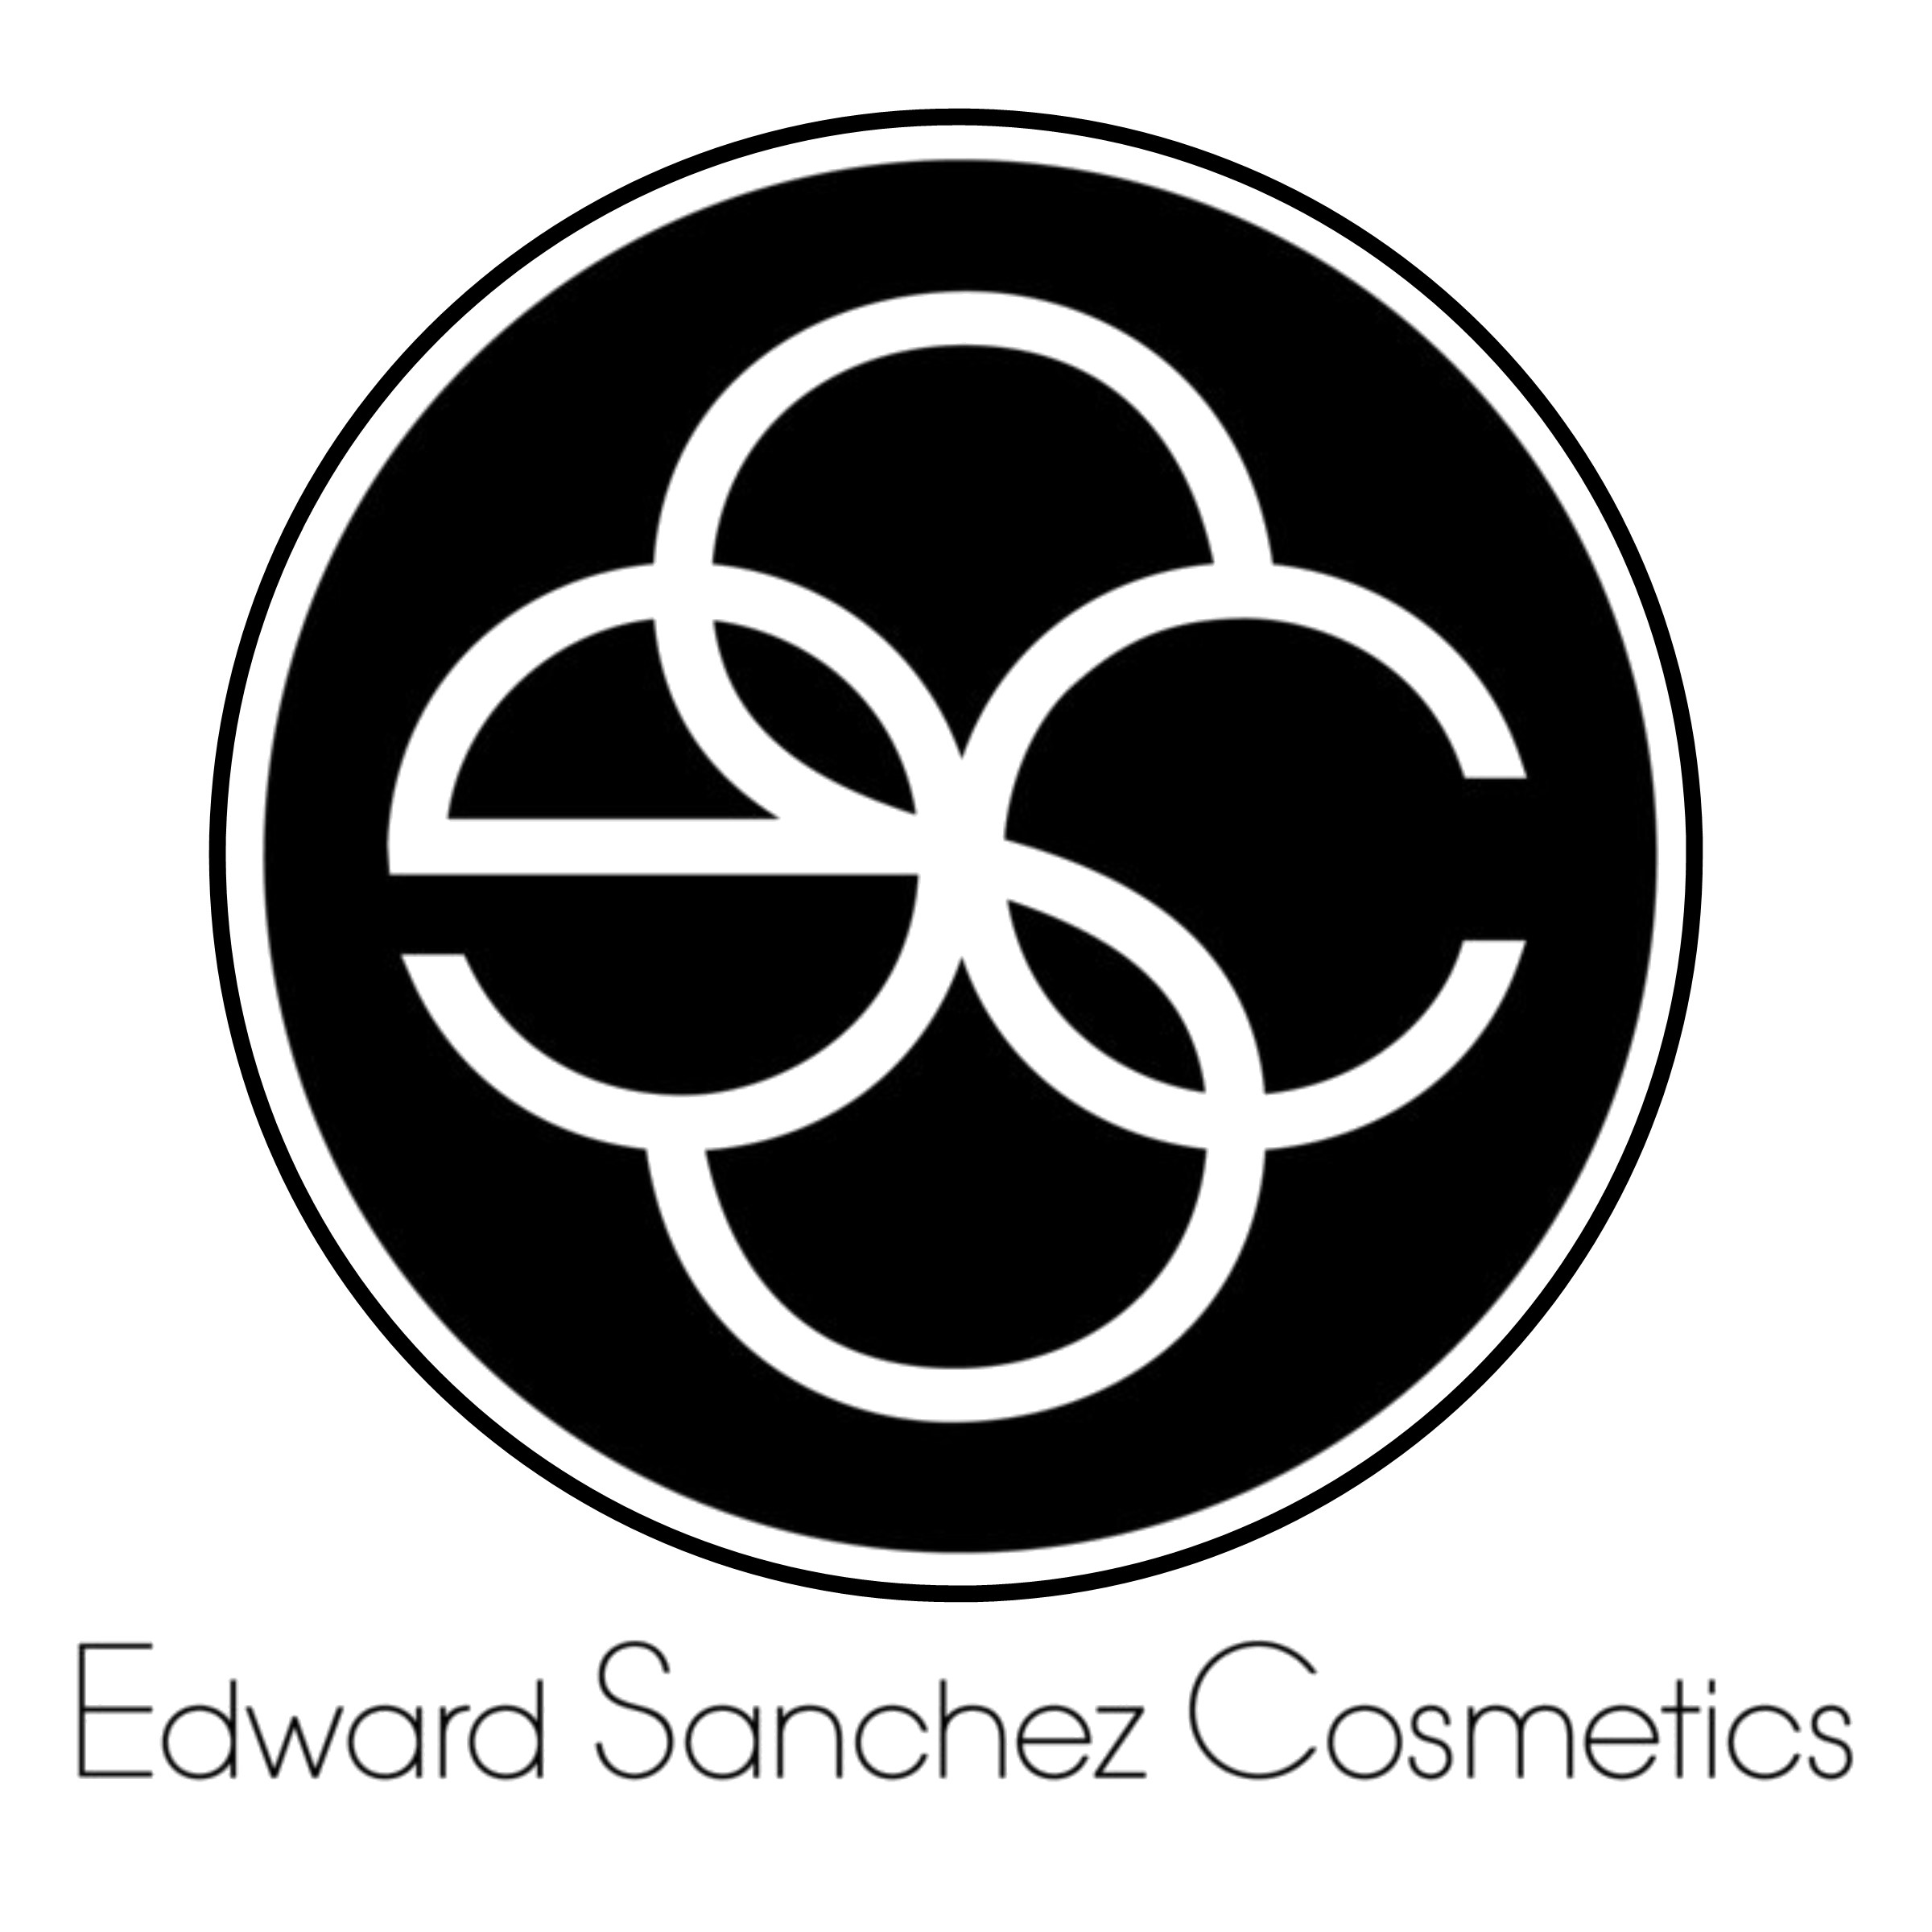 Edward Sanchez Cosmetics